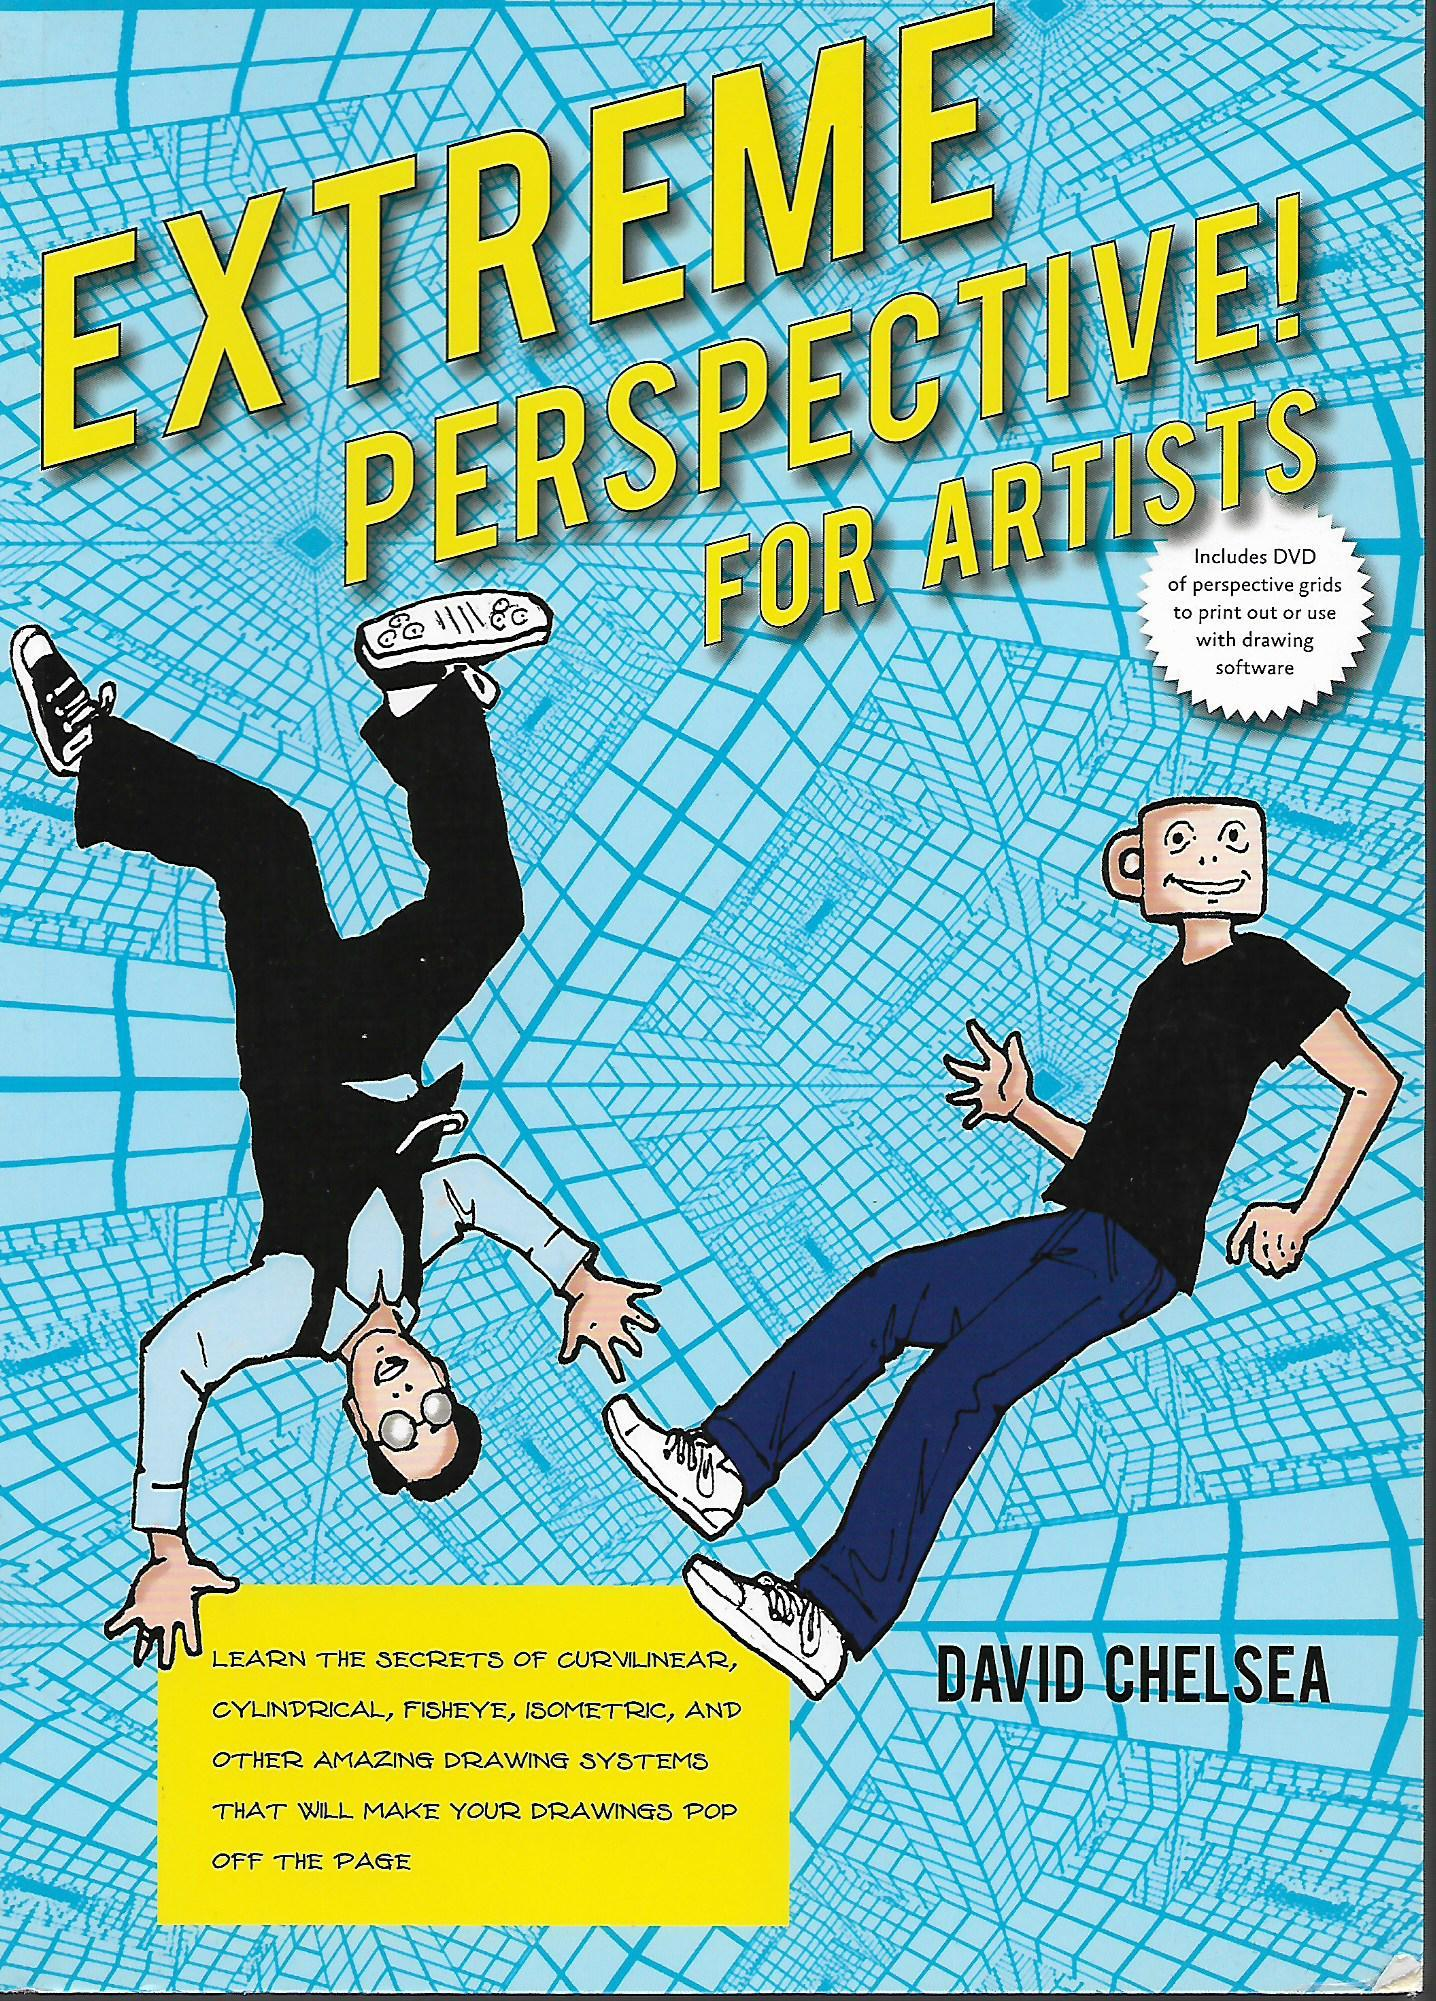 Extreme Perspective! For Artists: Learn the Secrets of Curvilinear, Cylindrical, Fisheye, Isometric, and Other Amazing Drawing Systems that Will Make Your Drawings Pop Off the Page, Chelsea, David